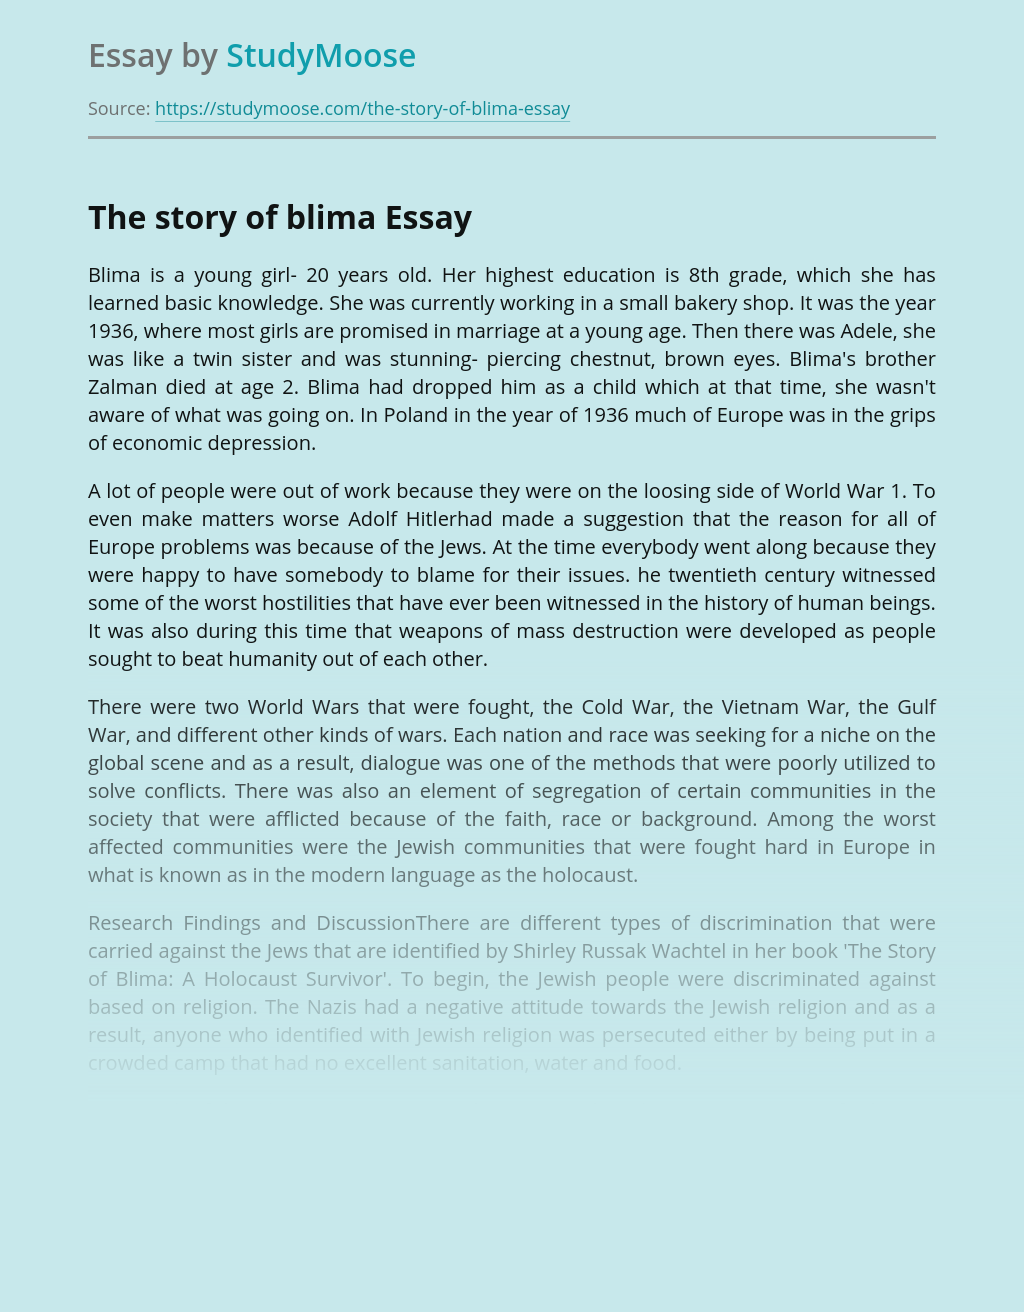 Religious Discrimination in The story of Blima